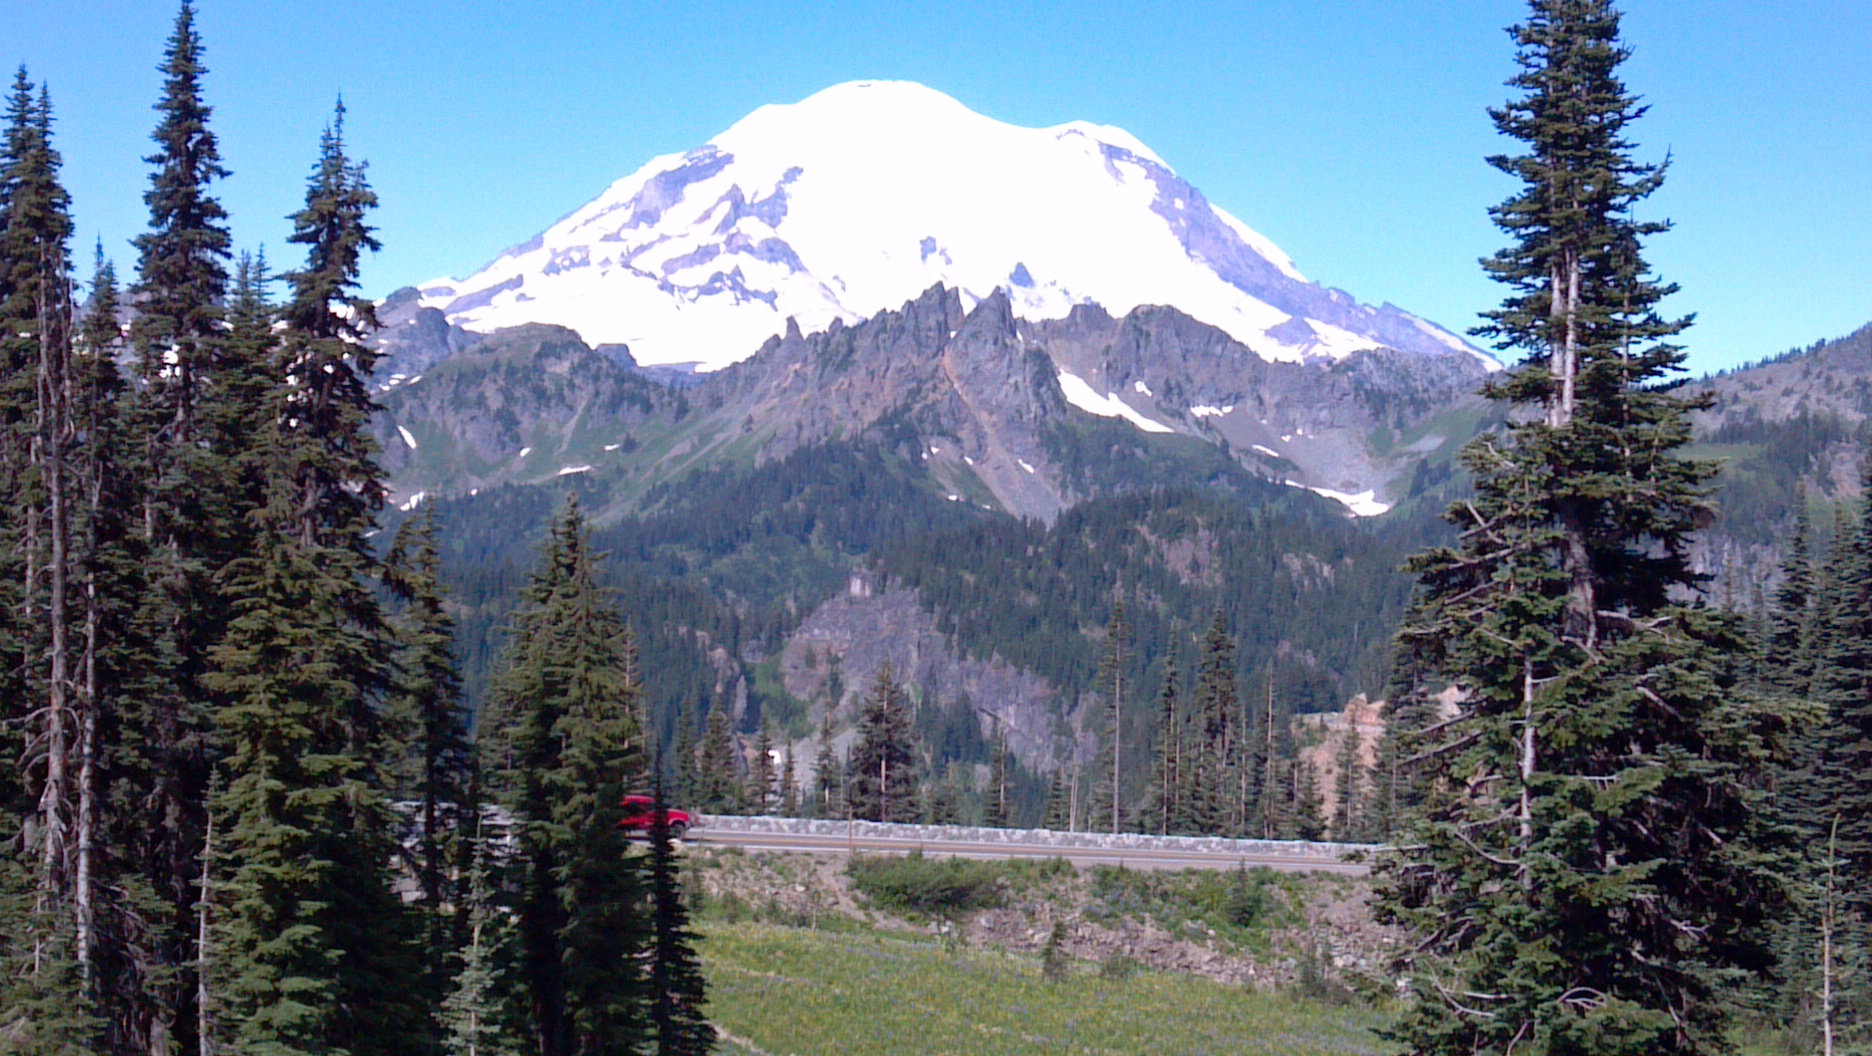 Mt. Rainier as seen from the summit of Chinook Pass in Washington state.